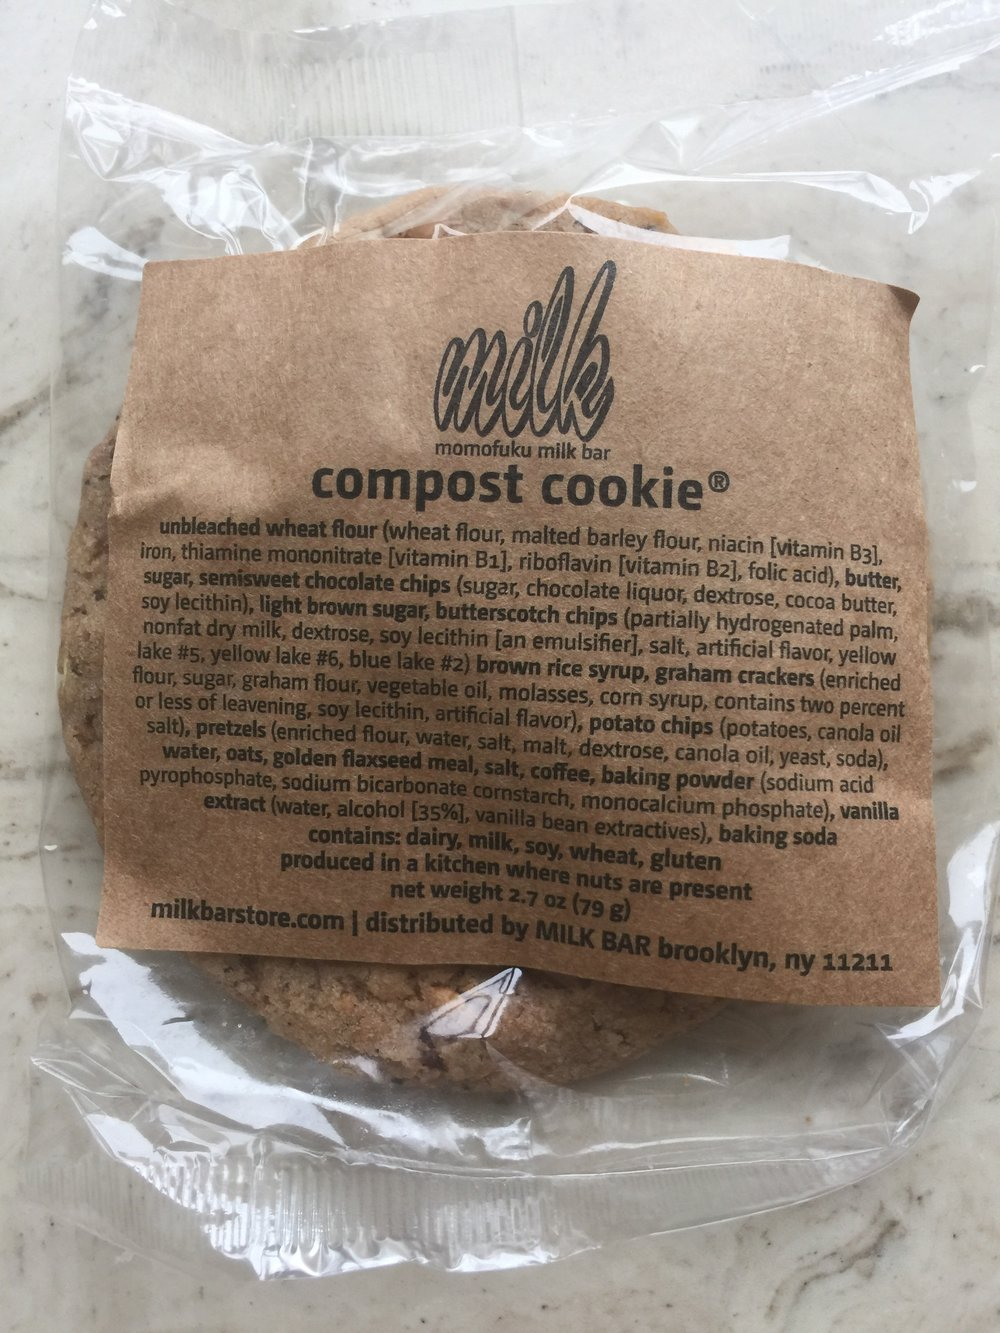 Milk Bar's   Compost Cookie  : Probably 7 million calories, but I don't know because I ordered it online and chose not to even look.  Also, because Momofuku's Milk Bar has fewer than 20 locations, they are exempt from New York City's calorie posting laws.